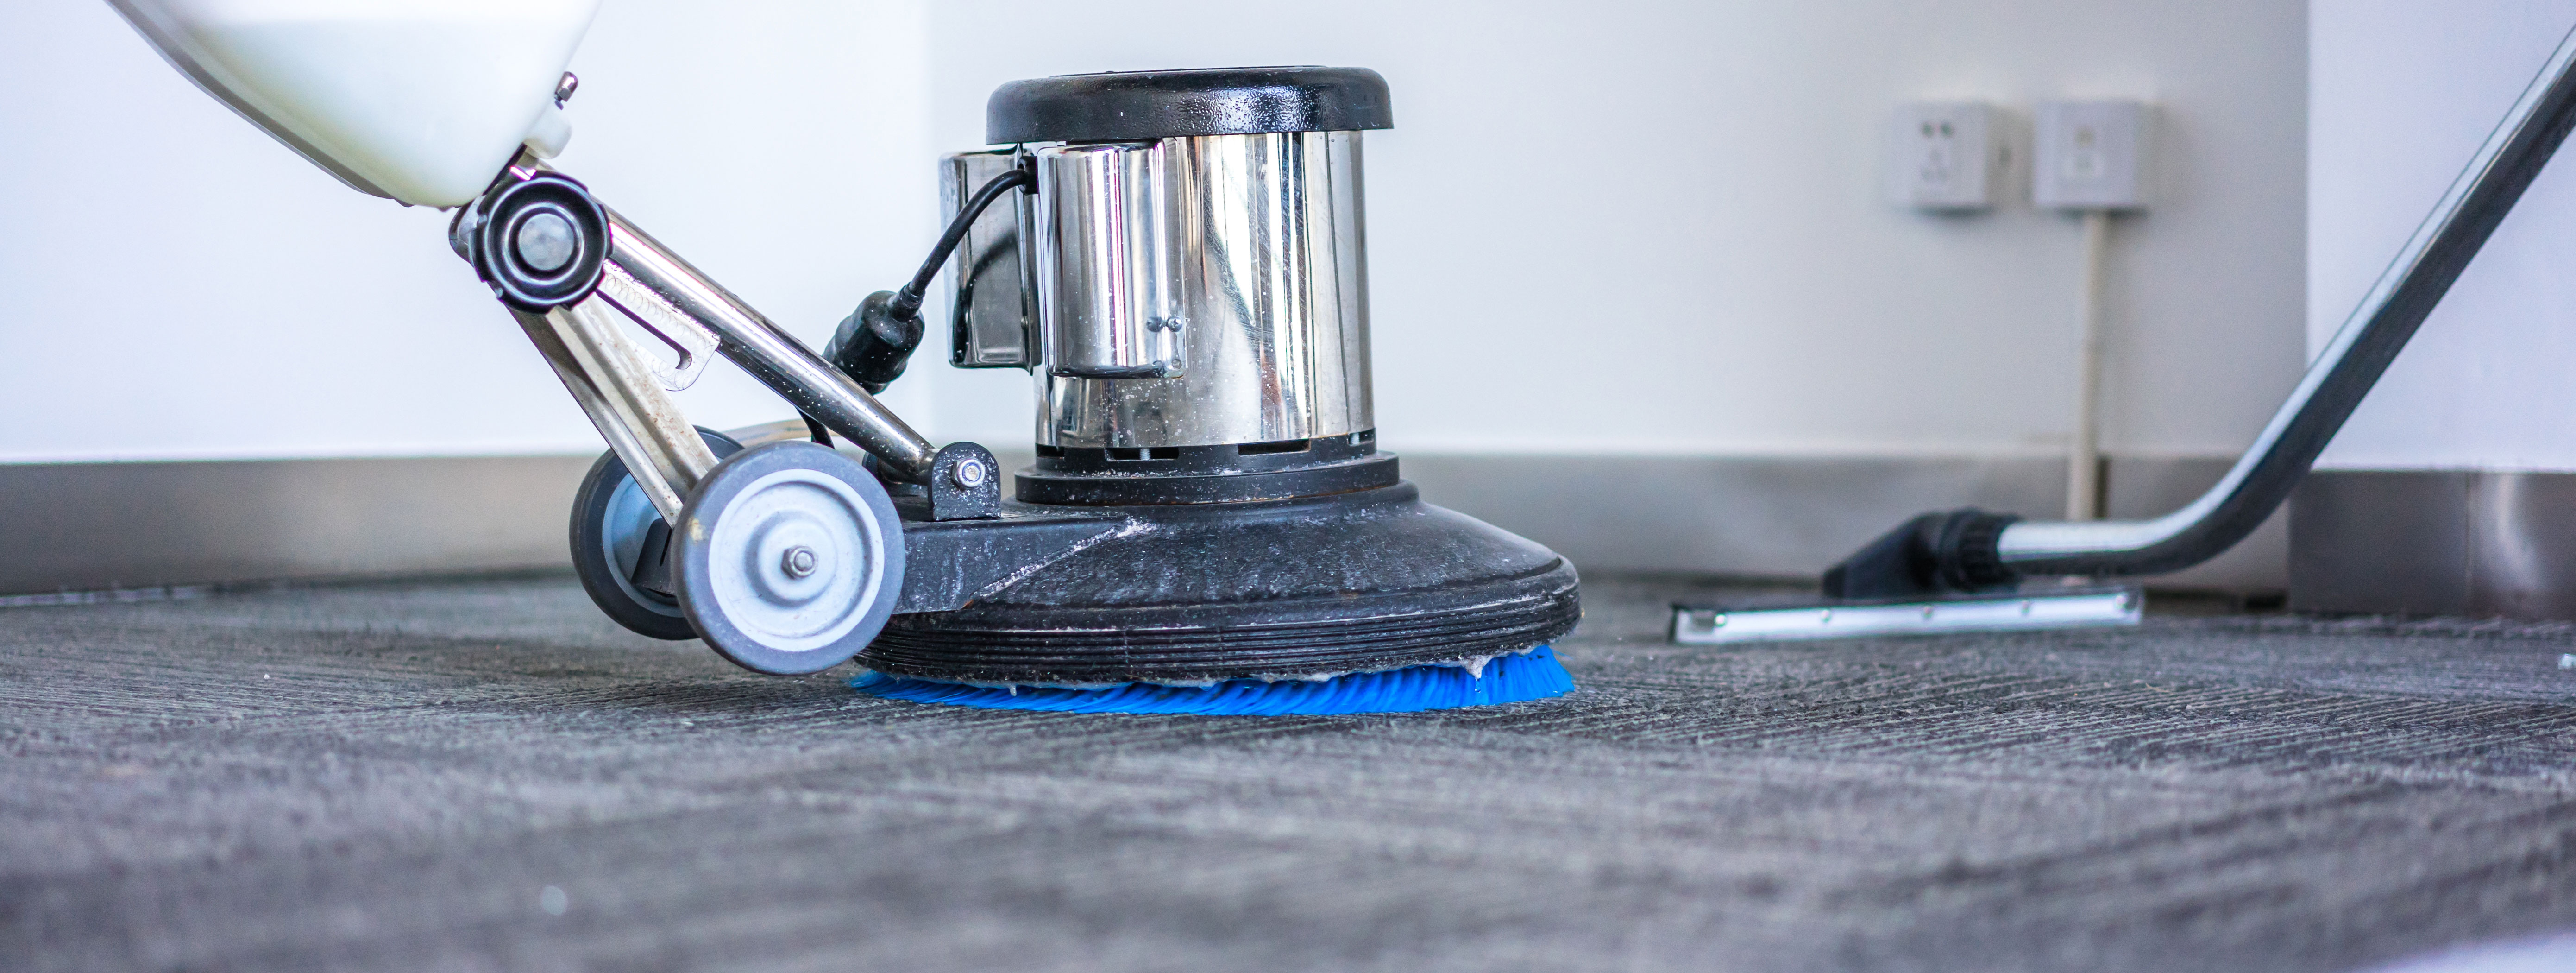 Floor machine cleaning a carpeted floor